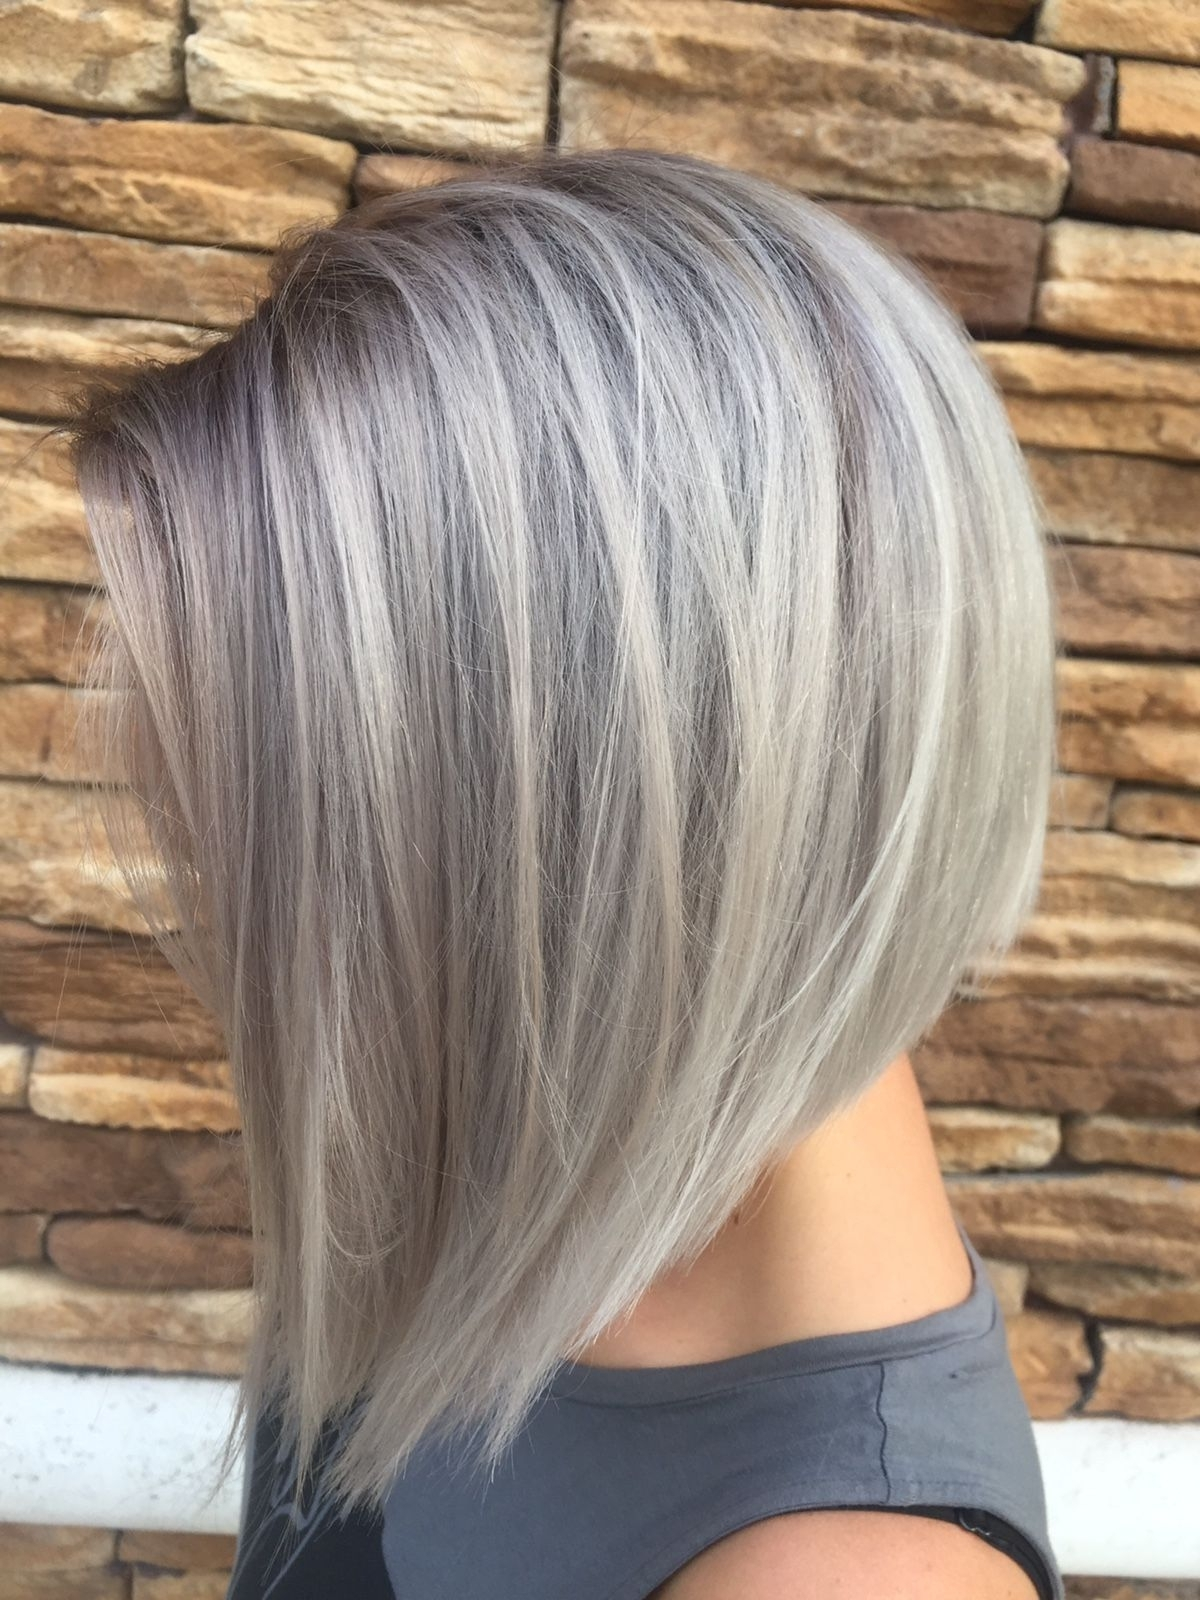 Braids, Buns, And Twists!: Step By Step Tutorials For 82 Fabulous With Regard To Newest Long Blonde Bob Hairstyles In Silver White (View 5 of 20)